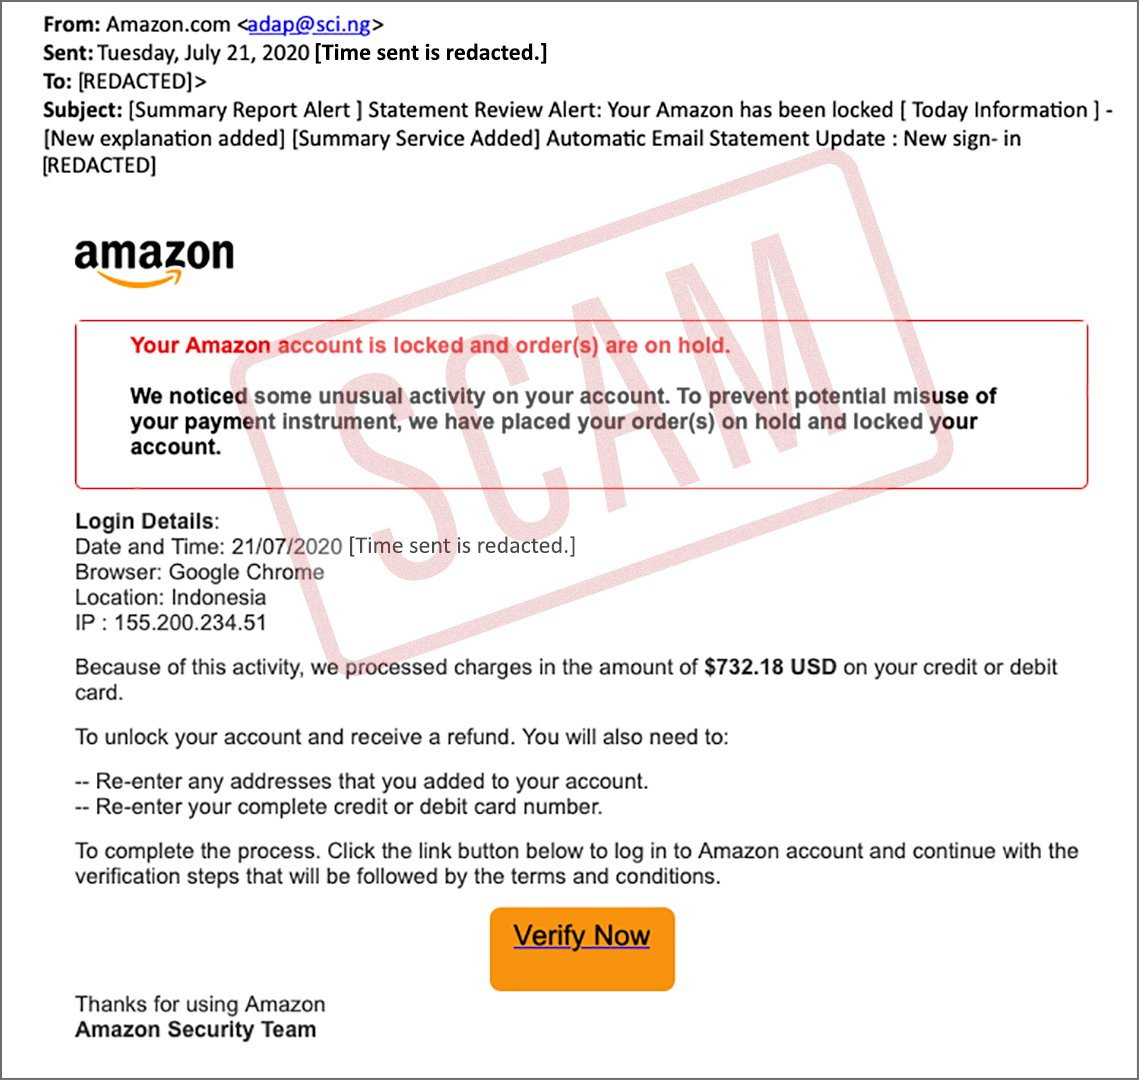 screenshot of a scam email purported to be from amazon